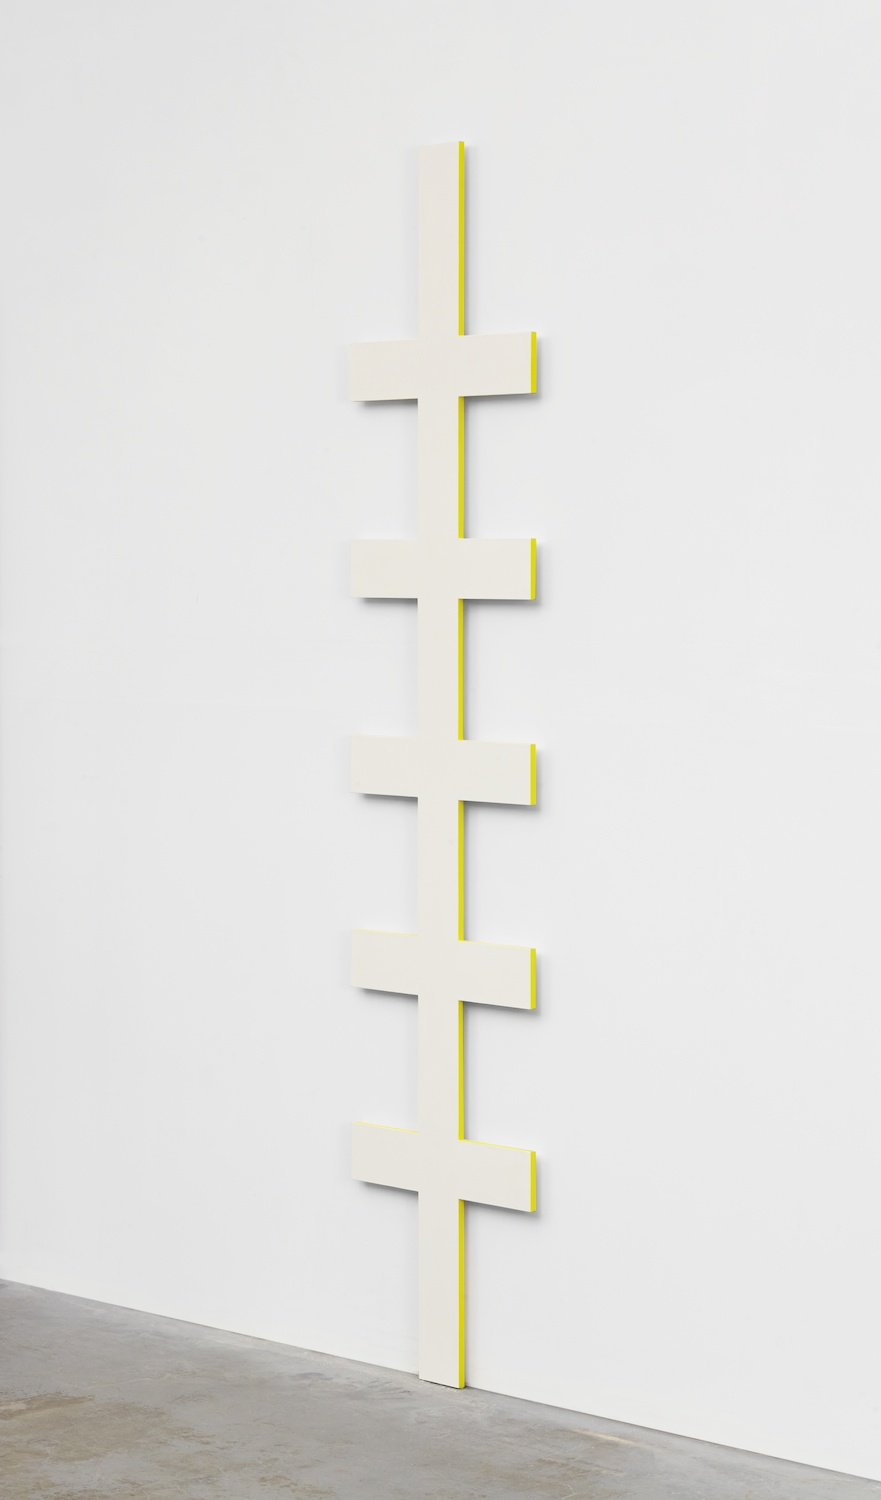 "Lisa Williamson Ladder 2014 Acrylic on aluminum 84"" x 18"" x 1"" LW142"